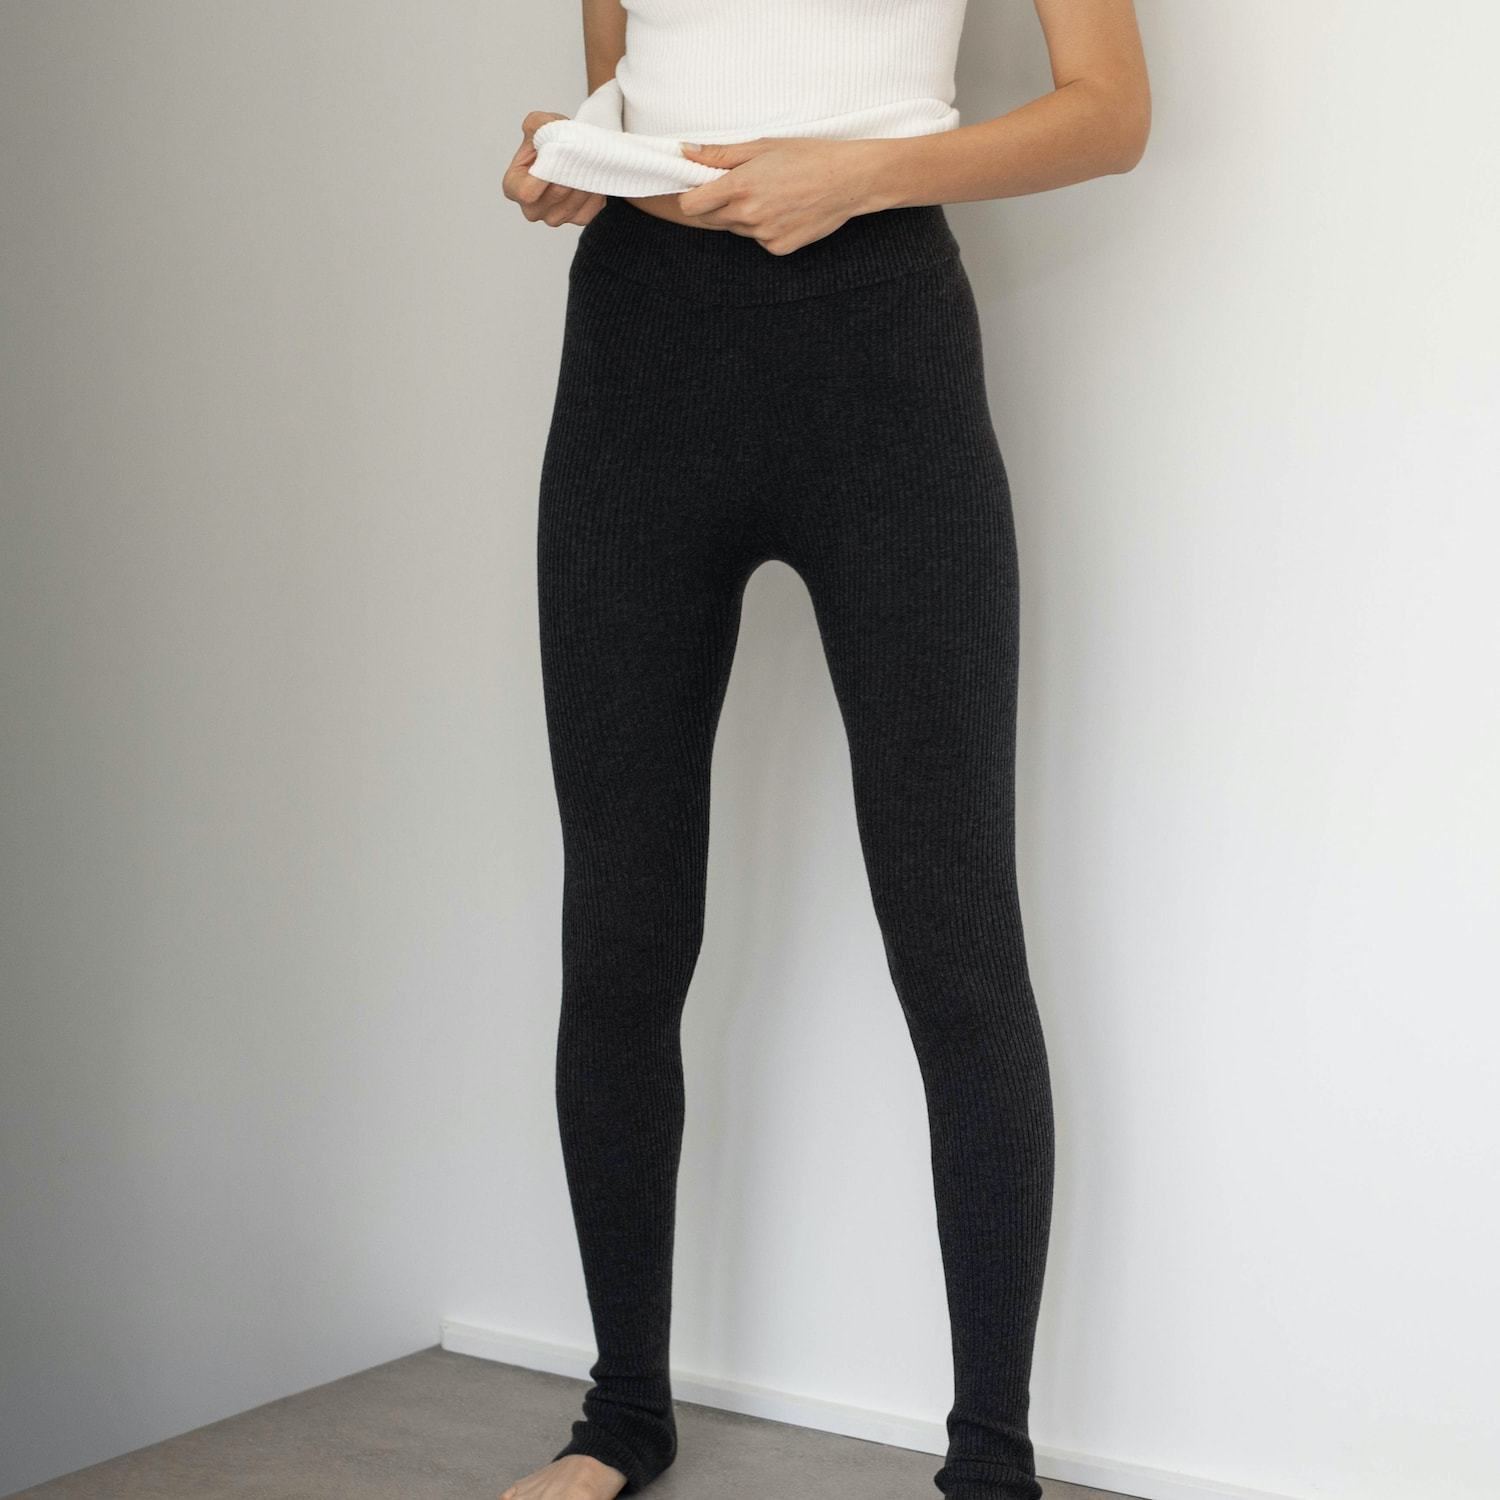 Lunya Sleepwear Cozy Cotton Silk Legging - #Onyx